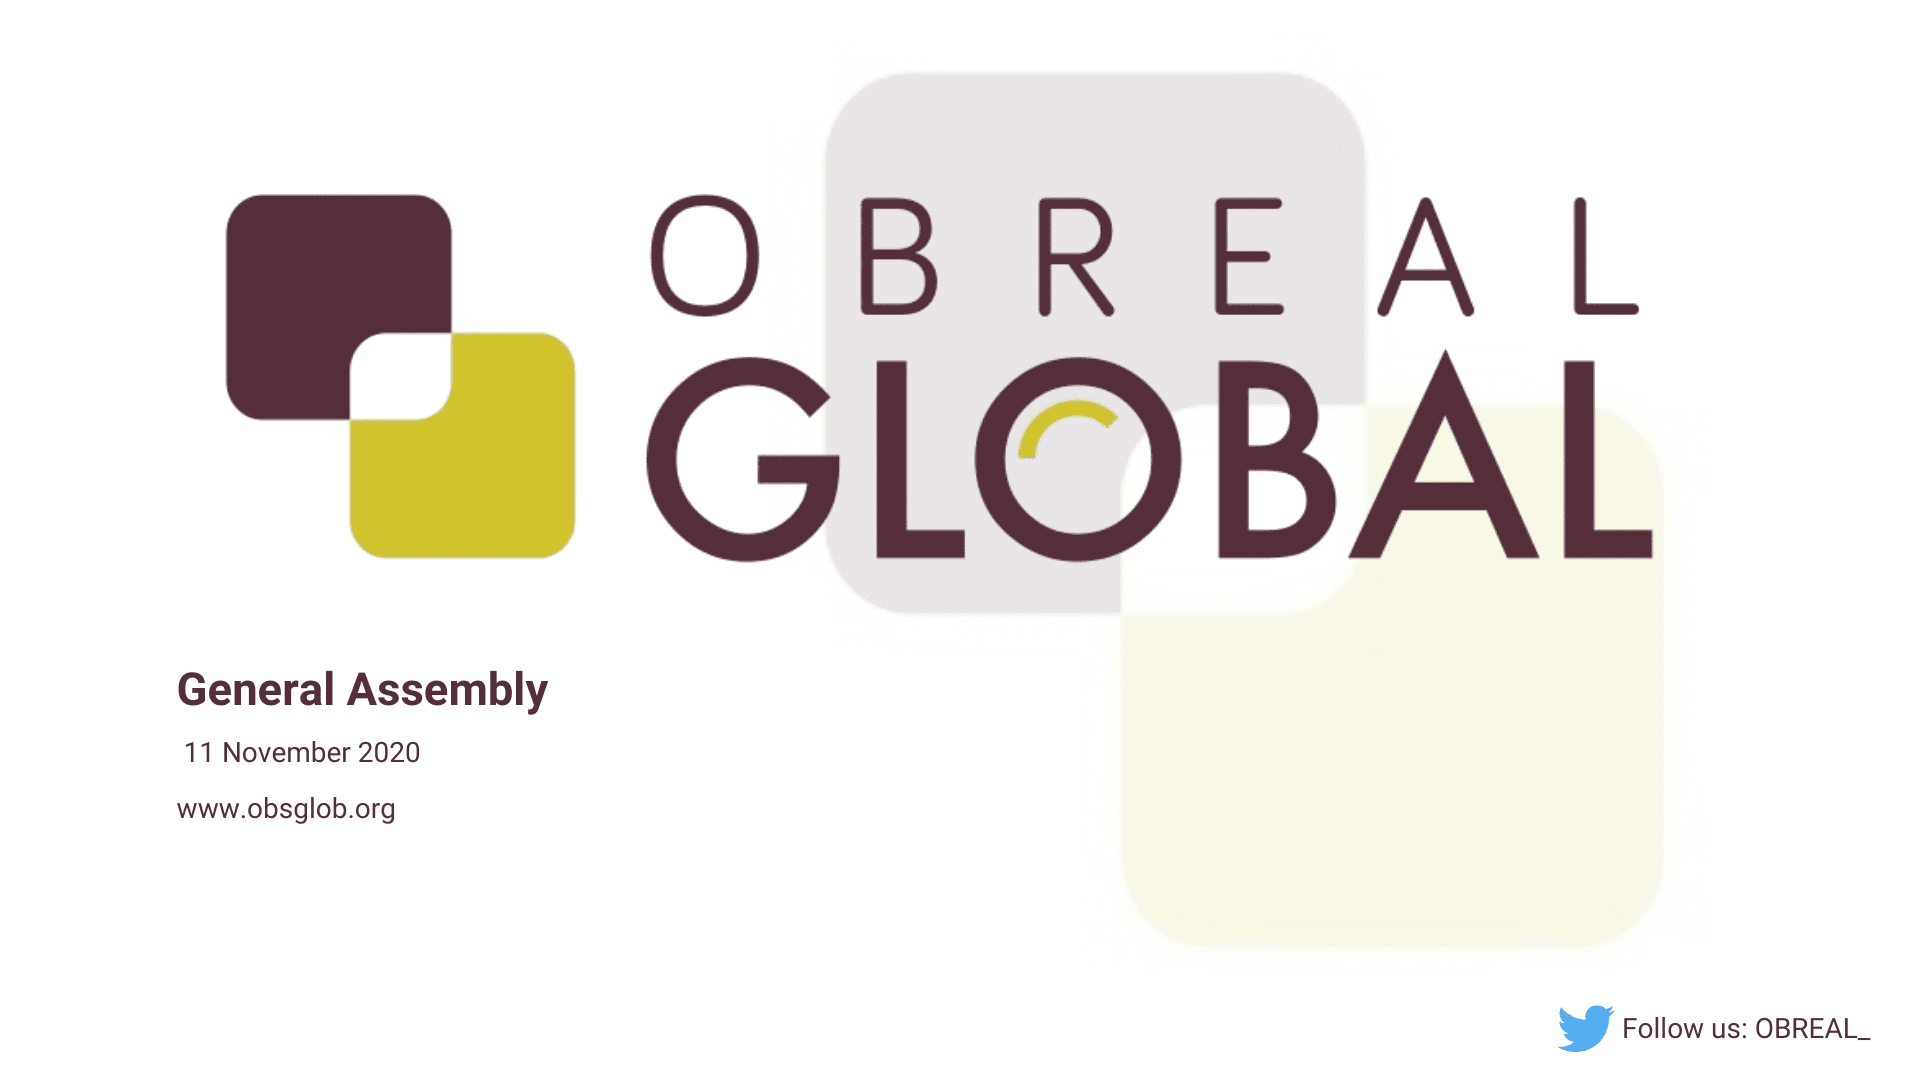 OBREAL GLOBAL General Assembly